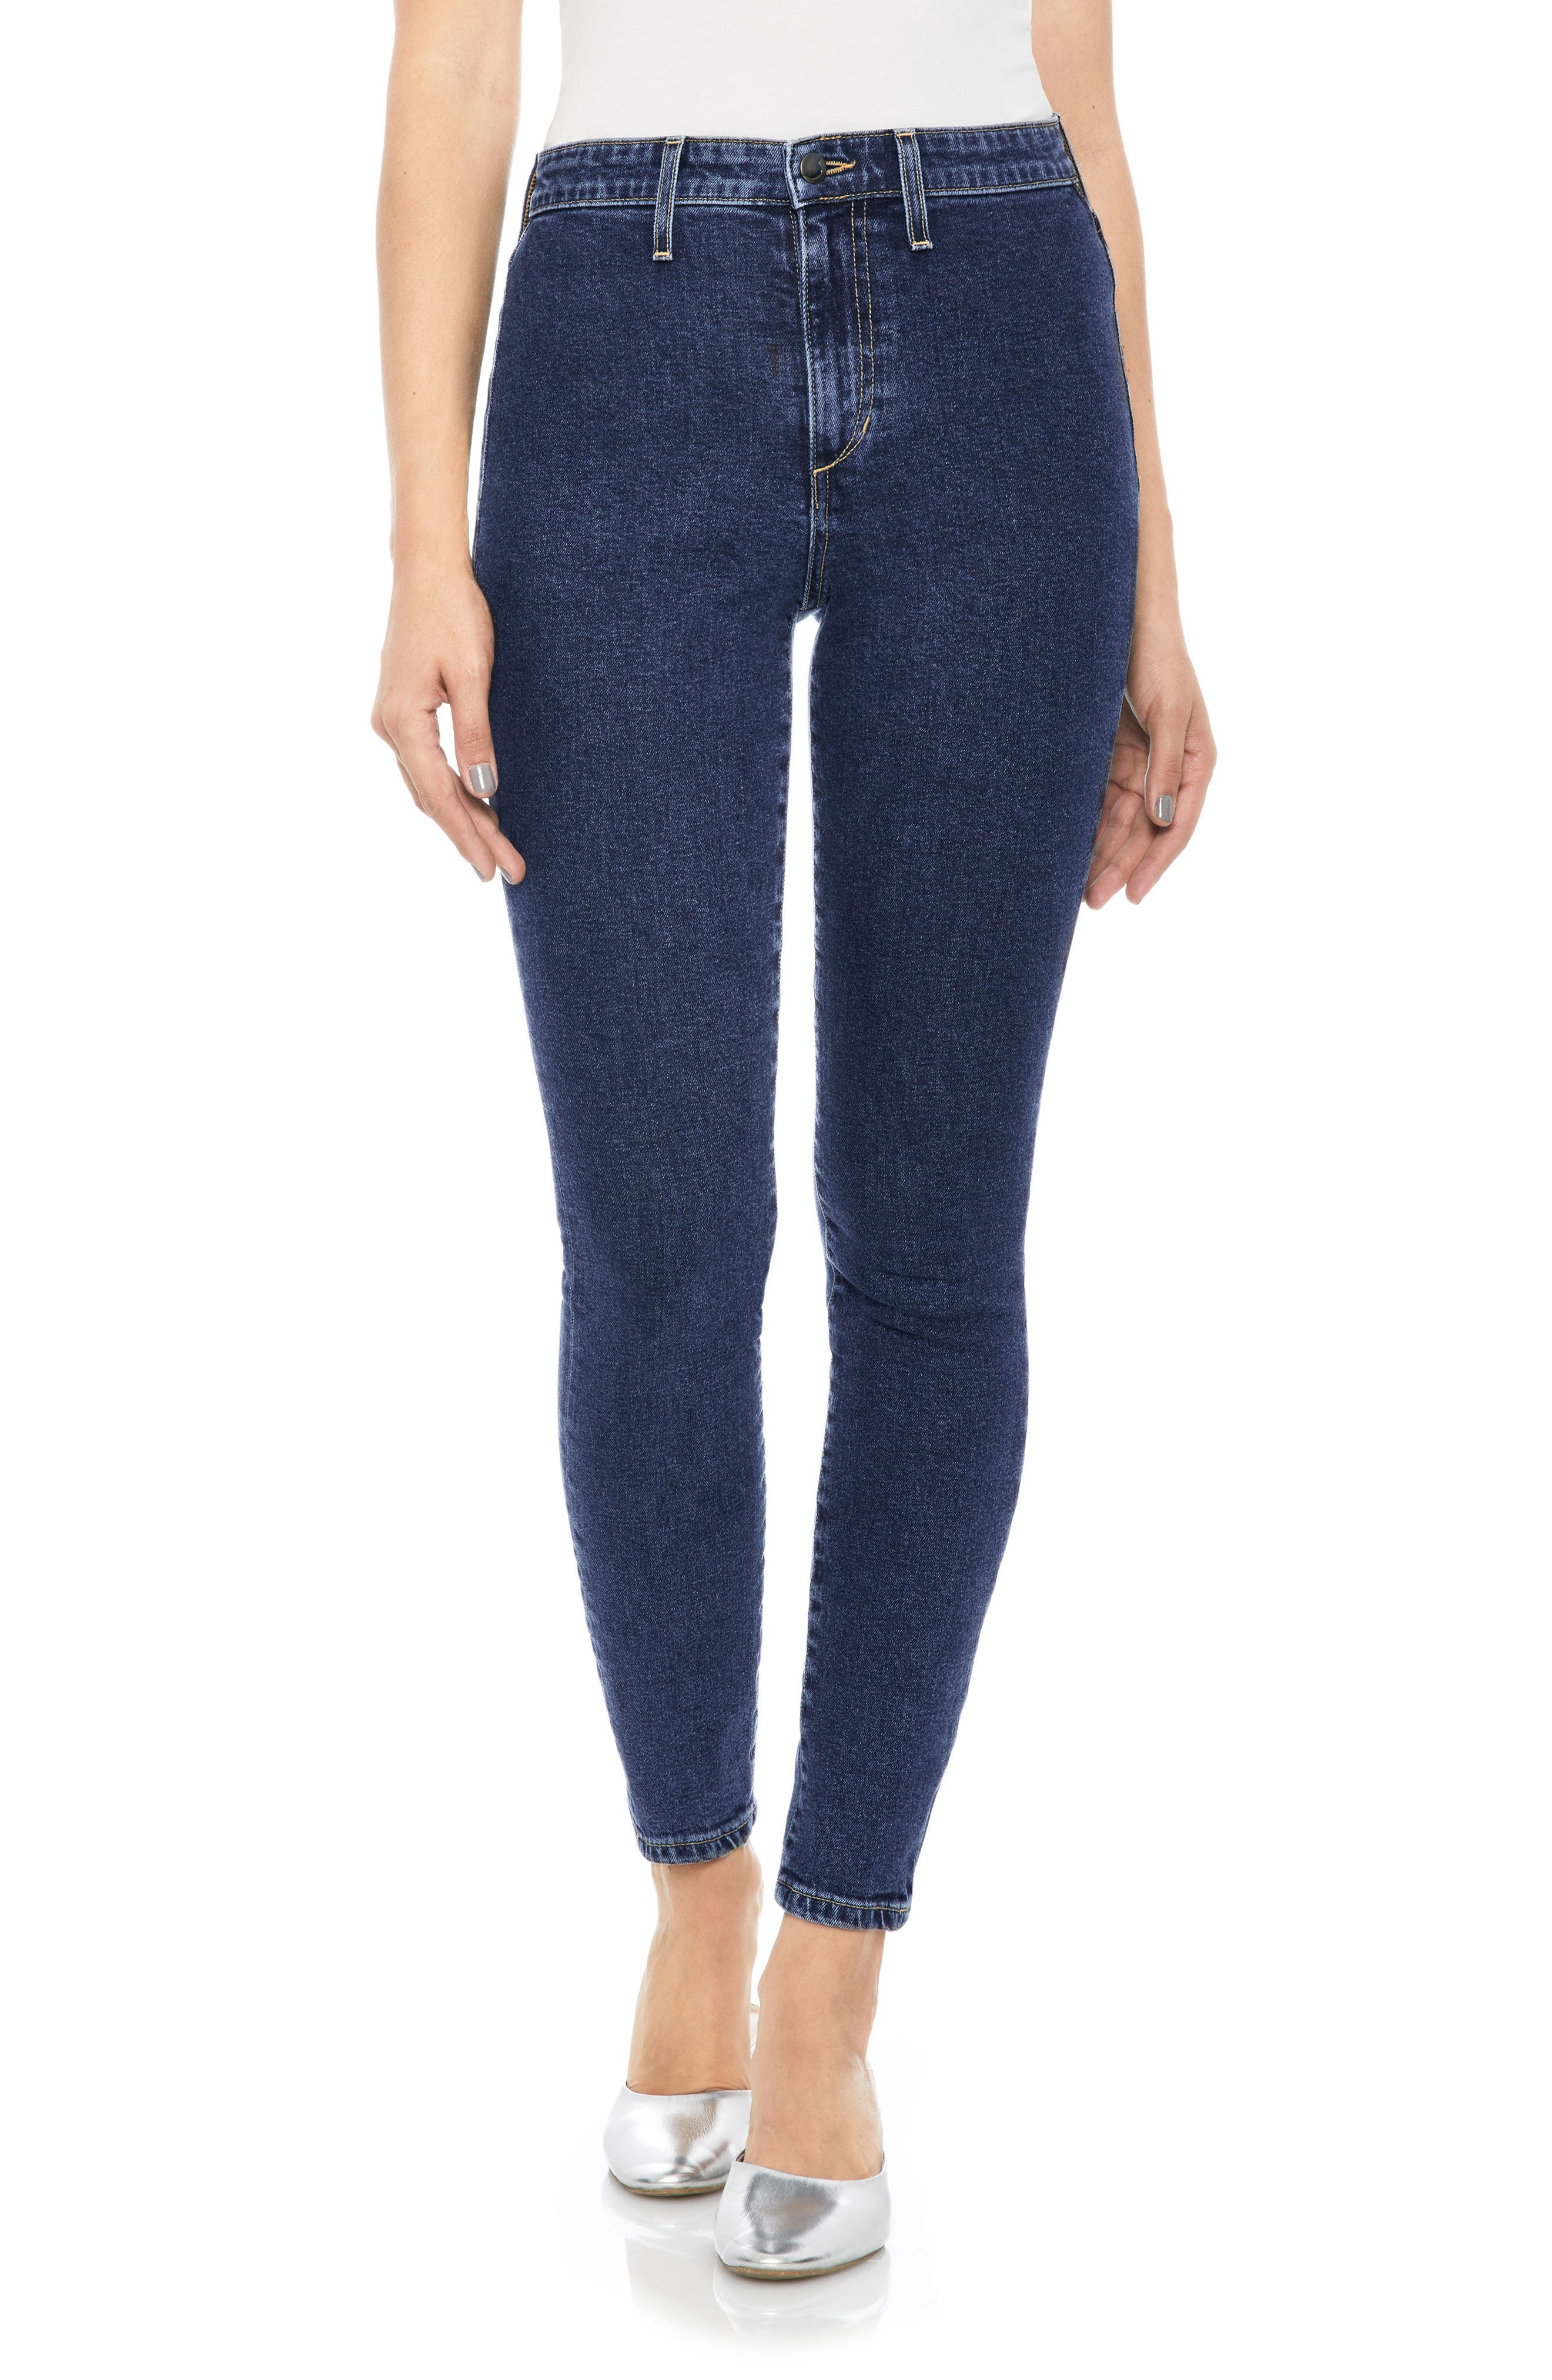 Charlie High Waist Ankle Skinny Jeans,                             Main thumbnail 1, color,                             400